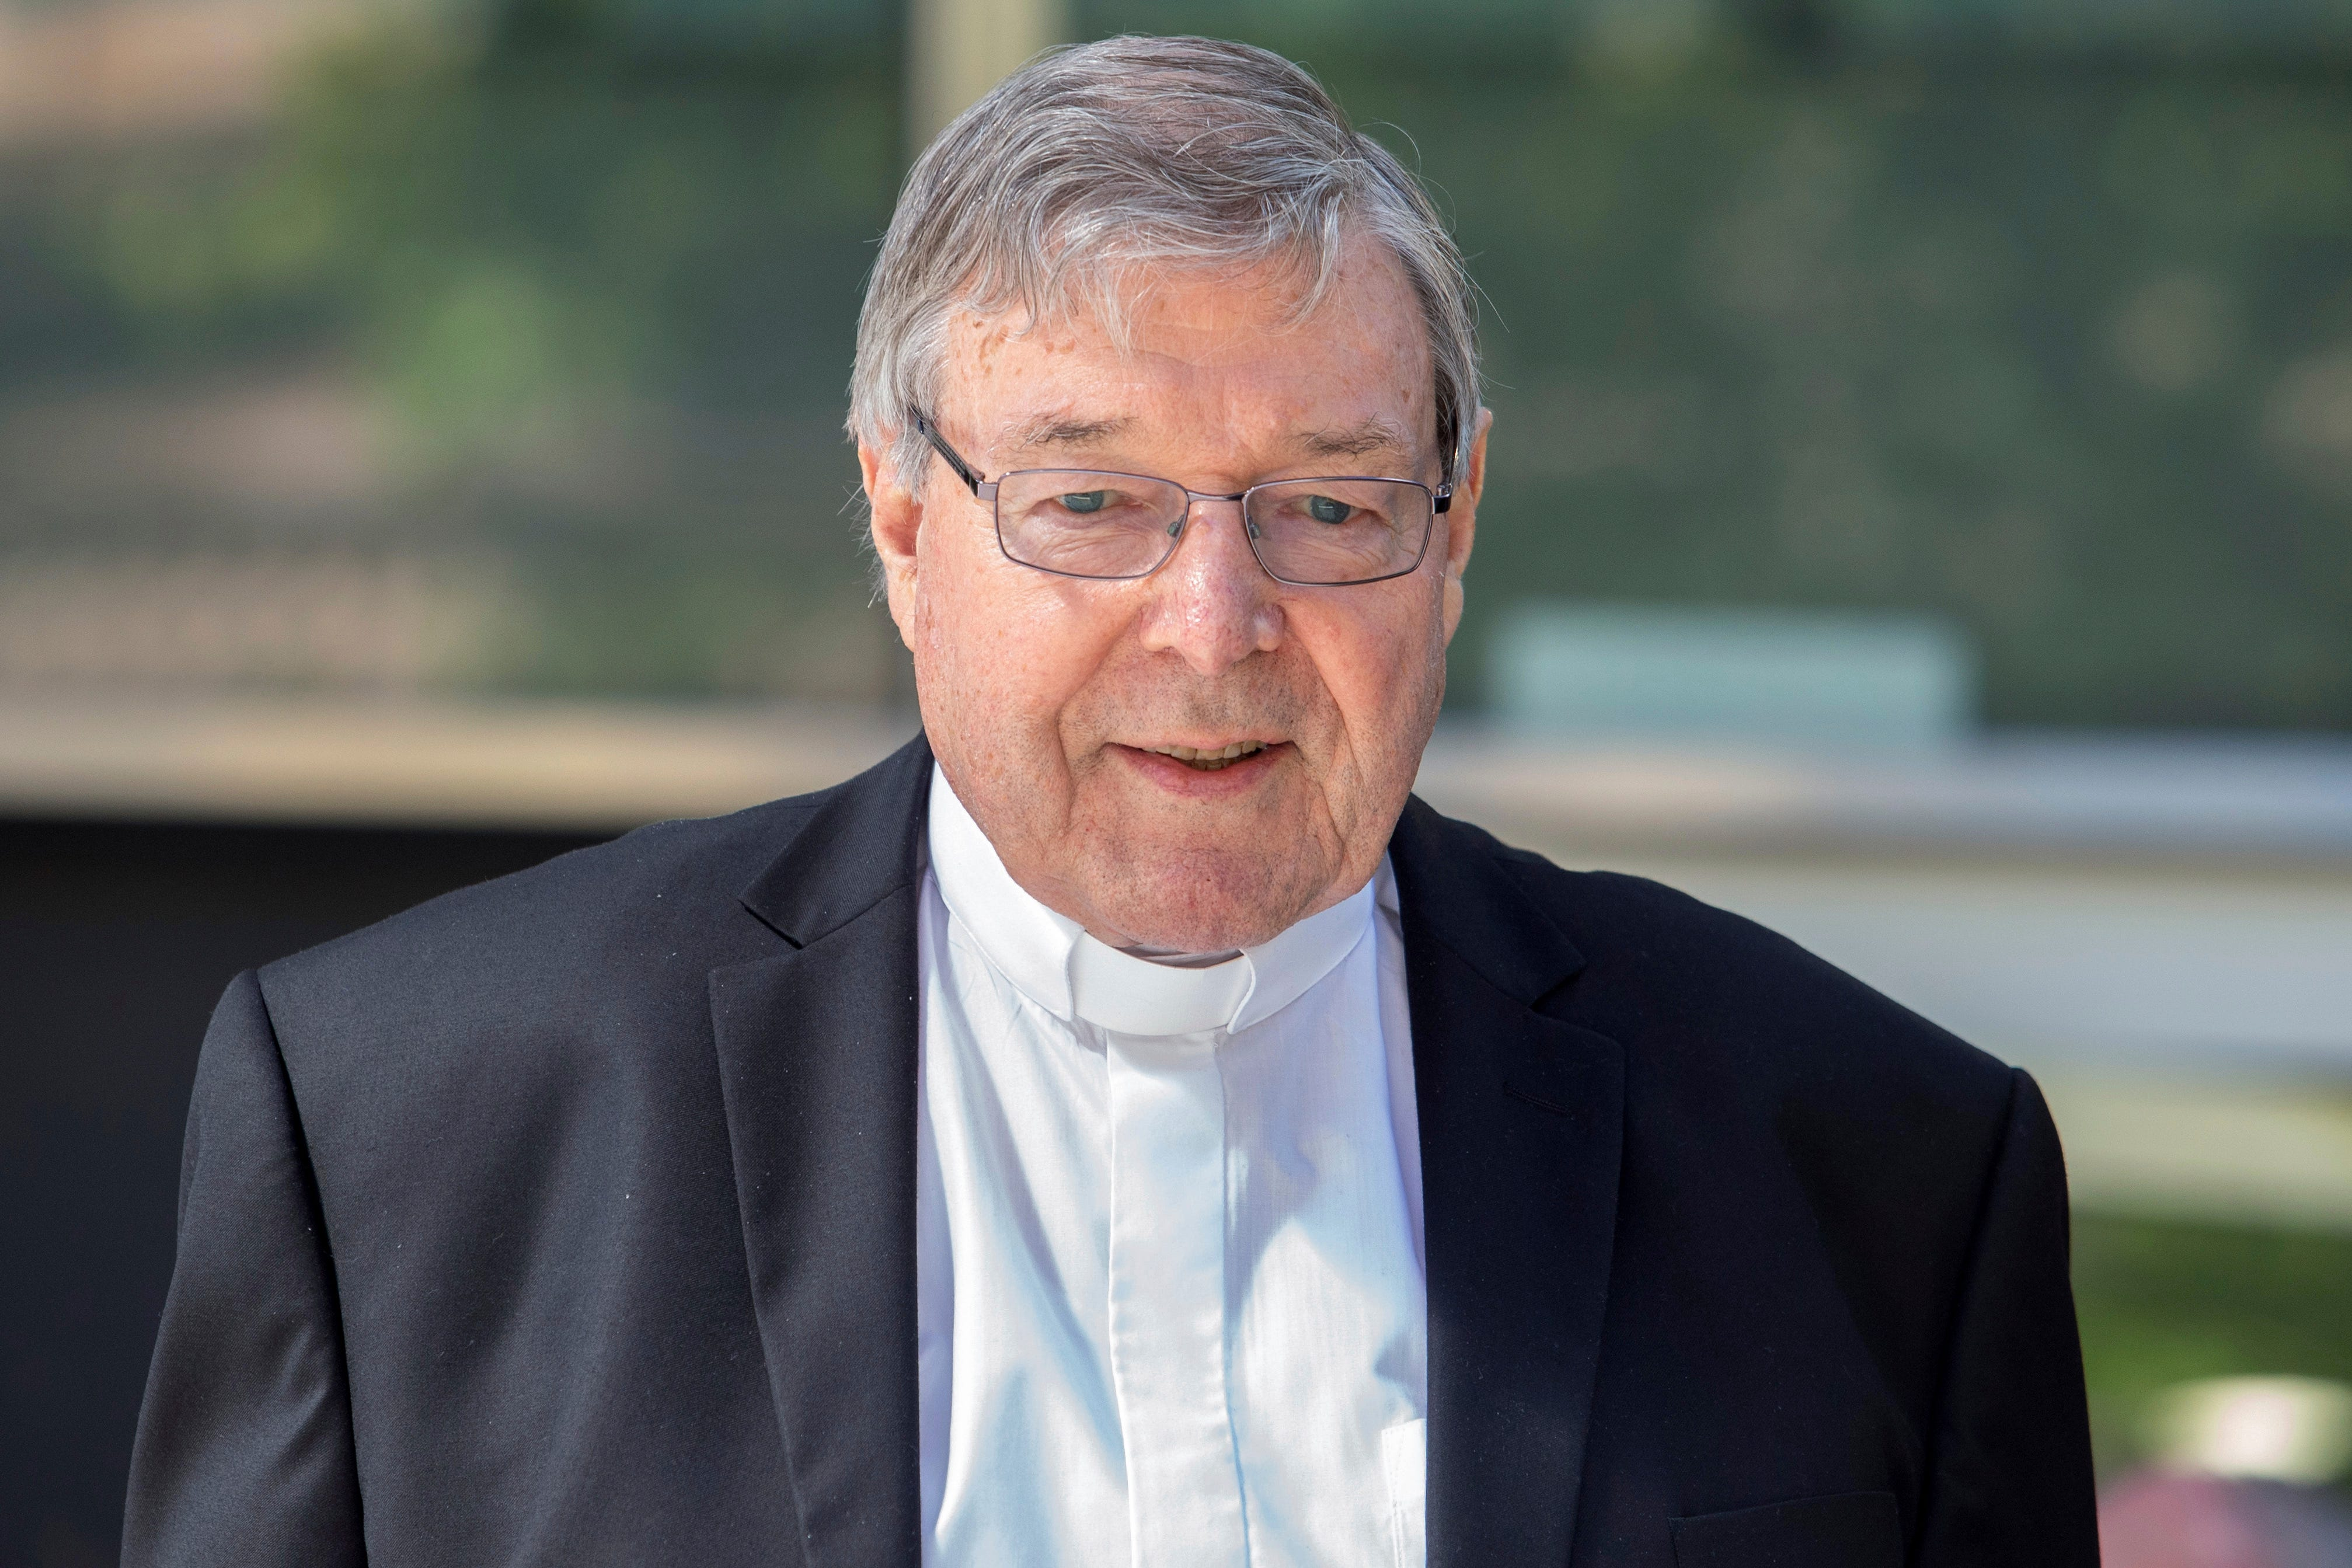 Cardinal George Pell, the most senior Catholic cleric to face sex charges, departs an Australian court.